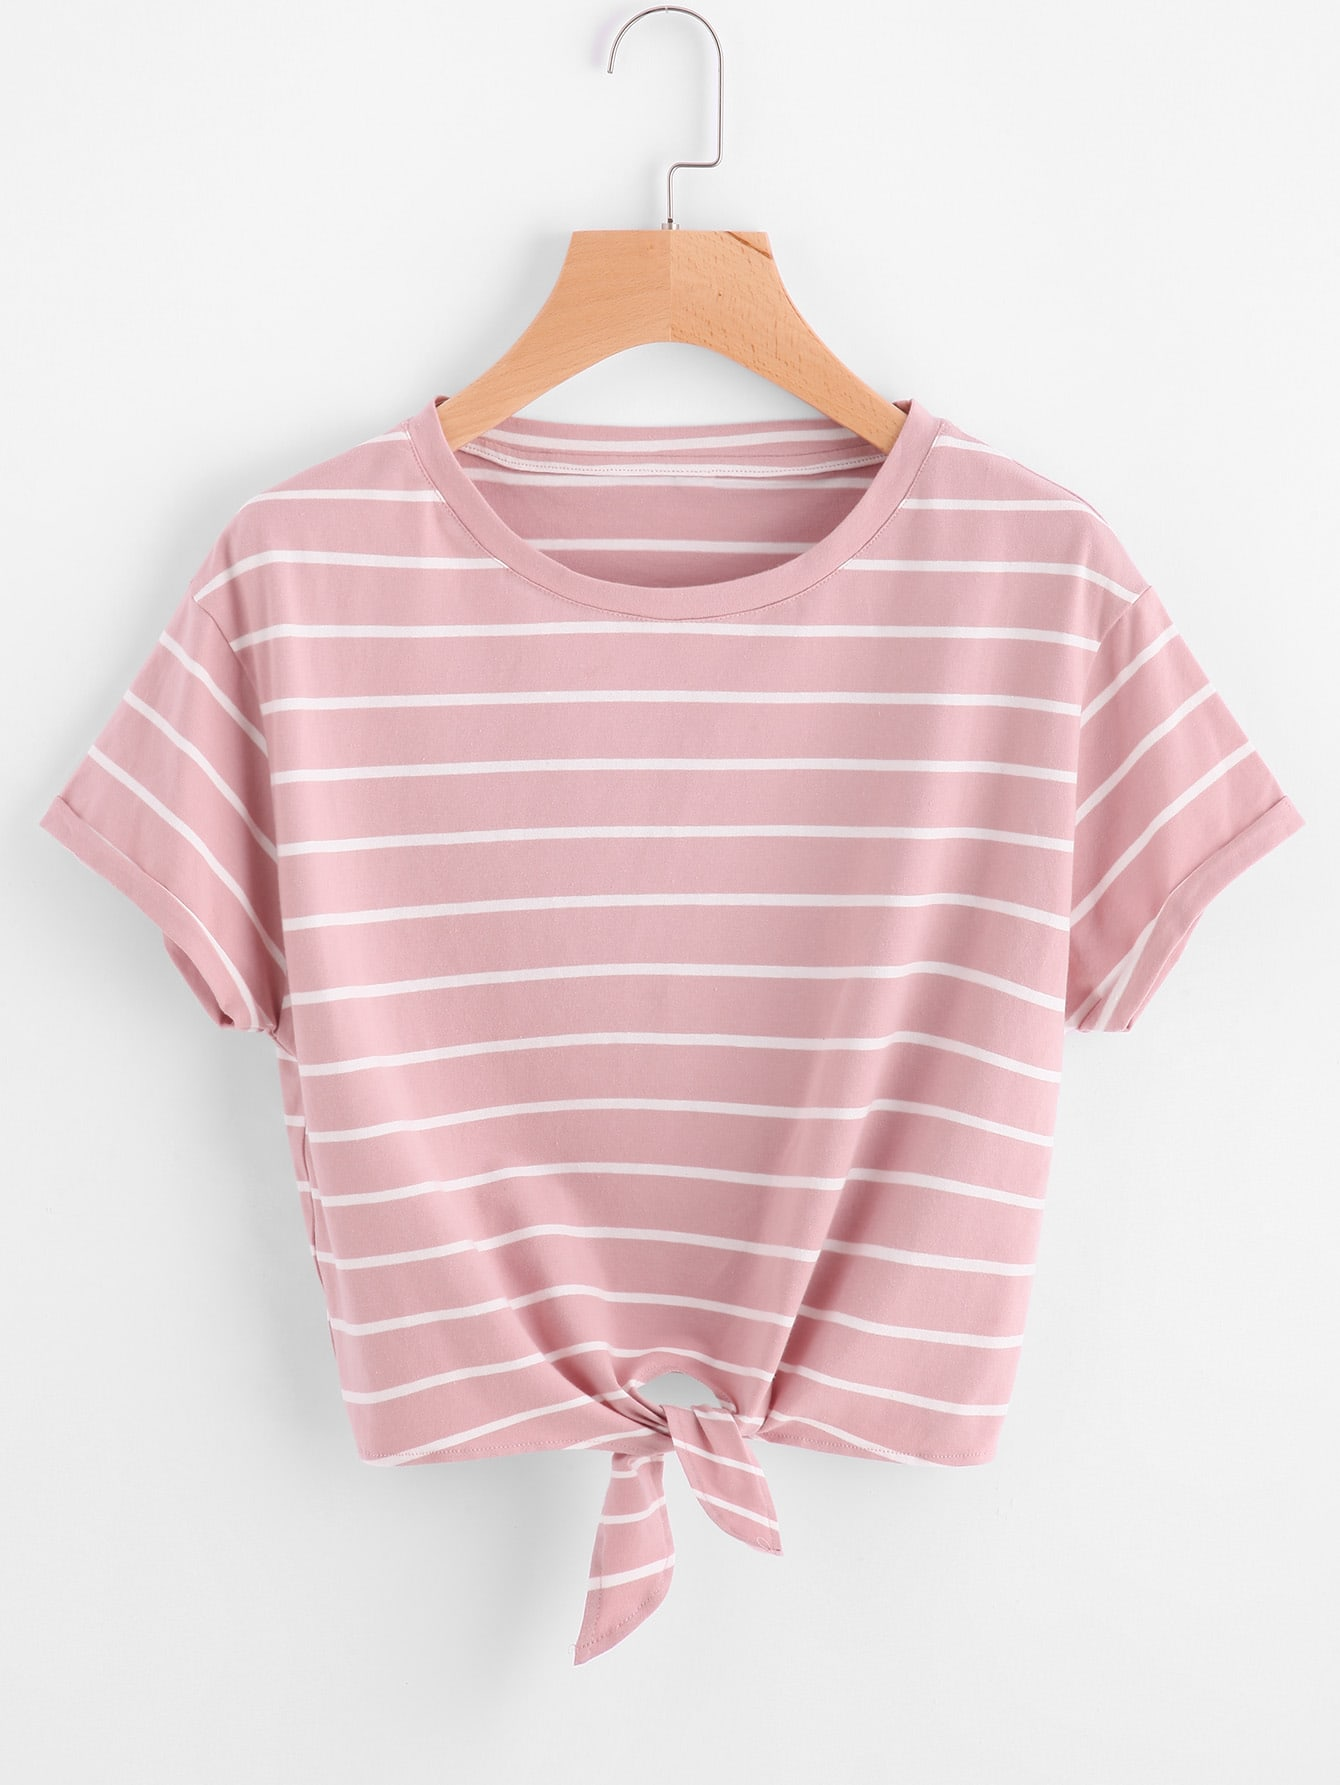 Knot Front Cuffed Sleeve Striped Tee knot front tee